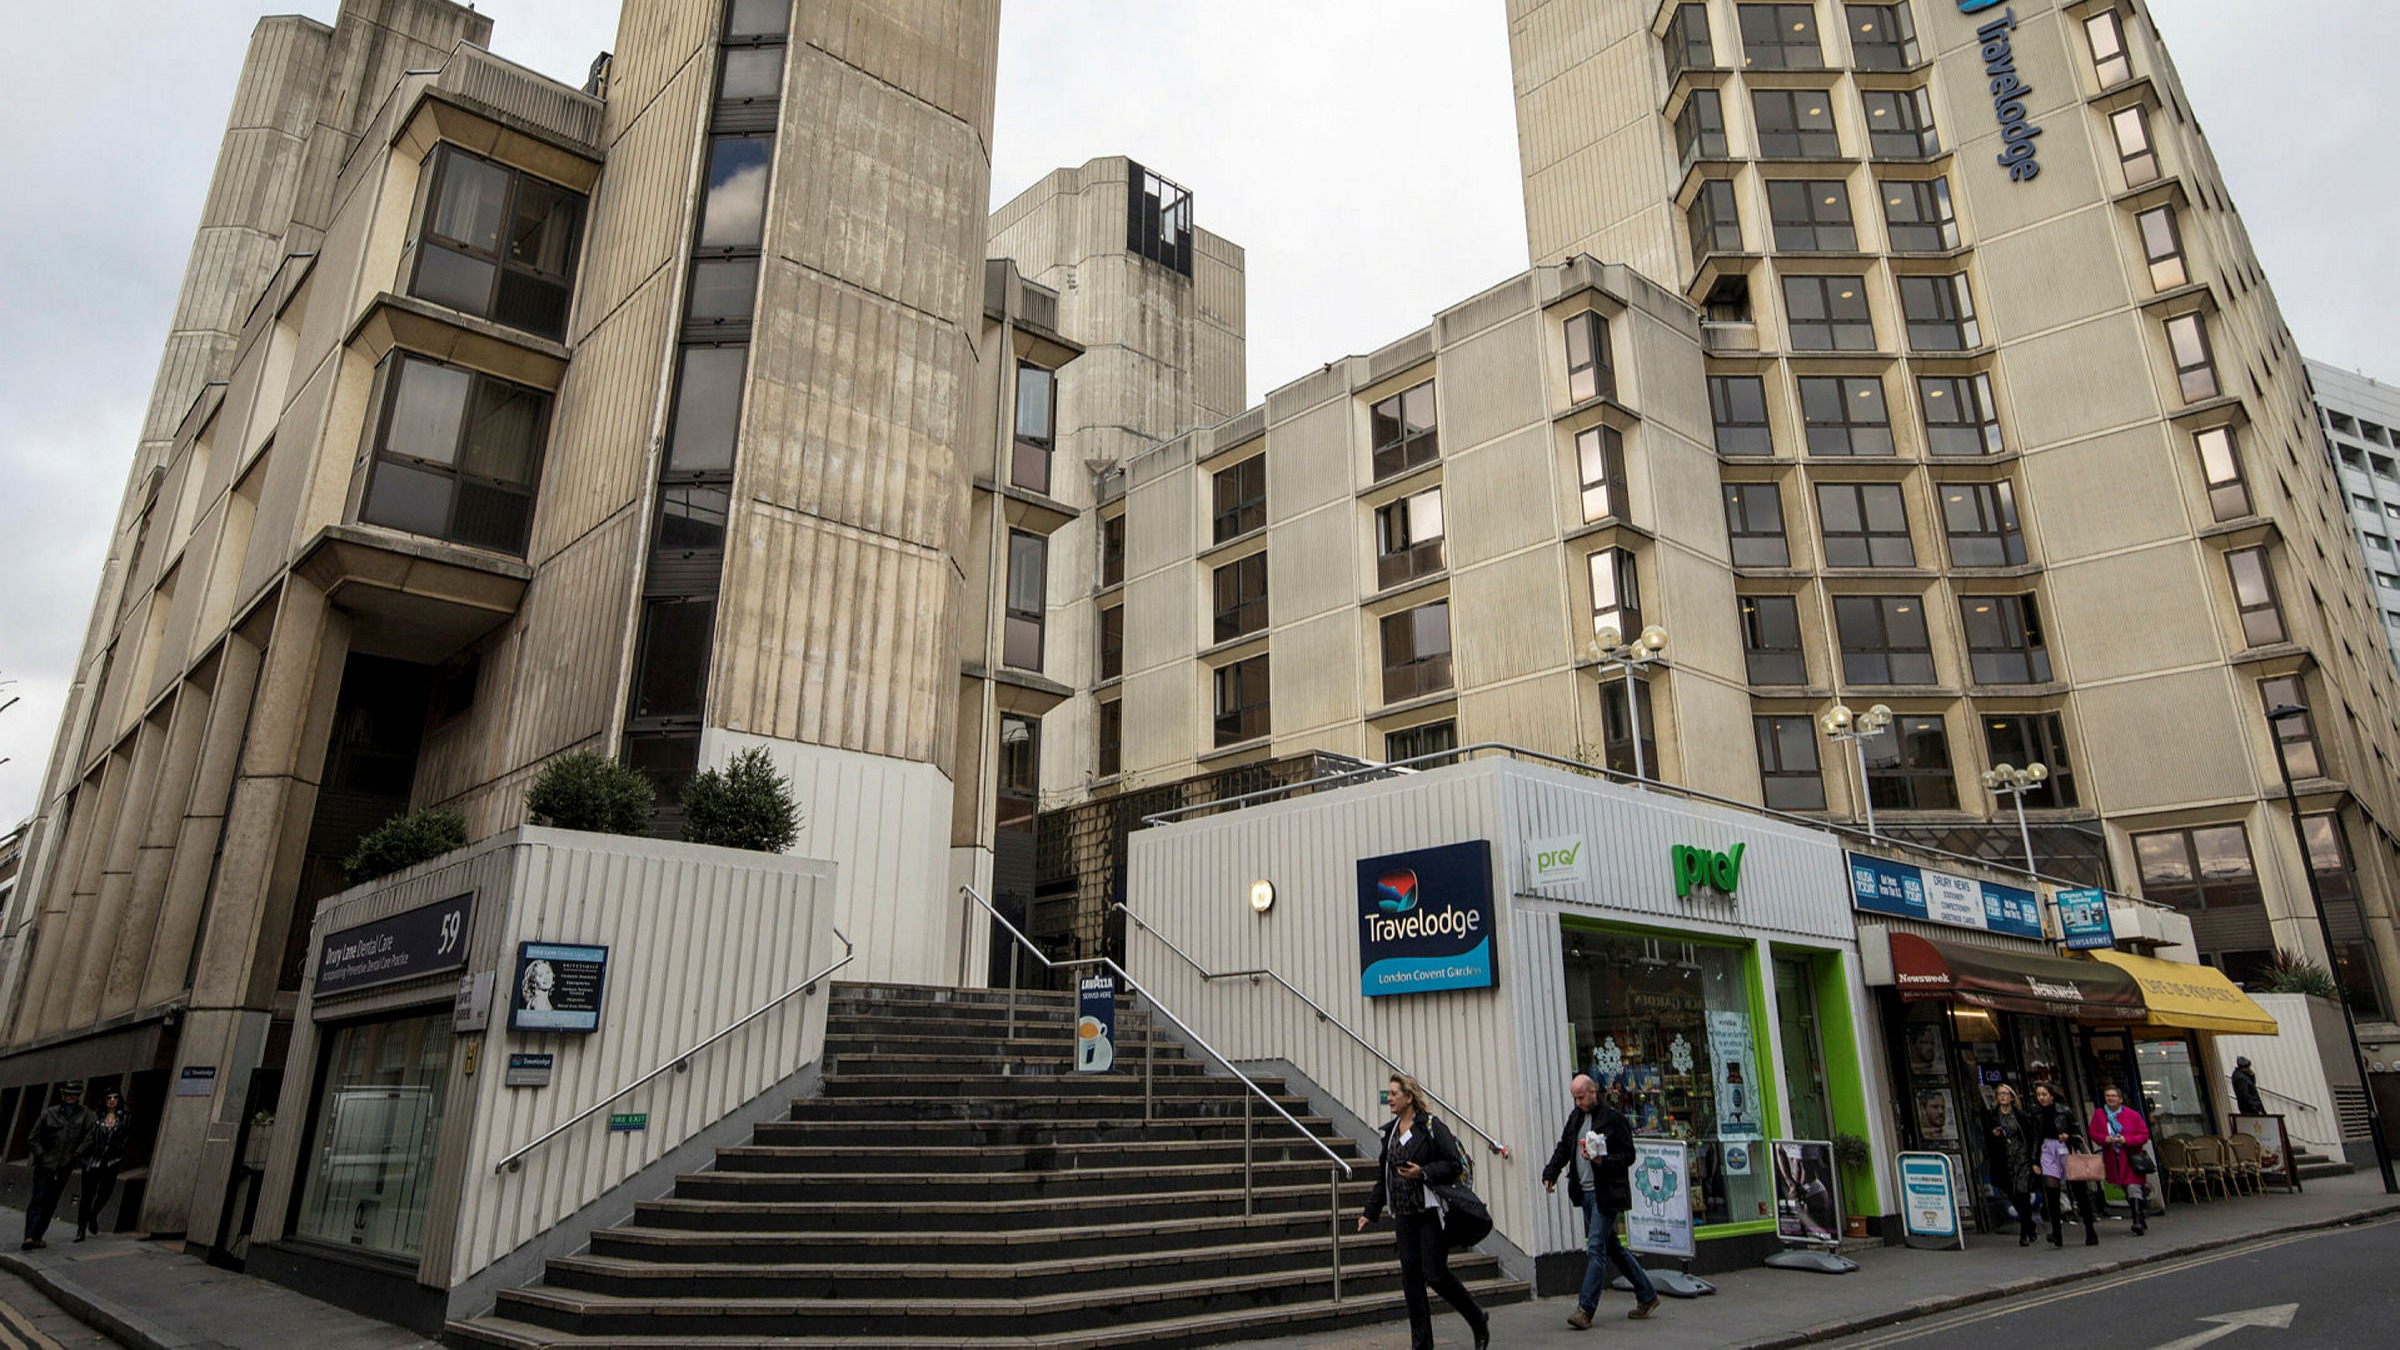 Travelodge In Talks With Landlords Over Rent Breaks Financial Times